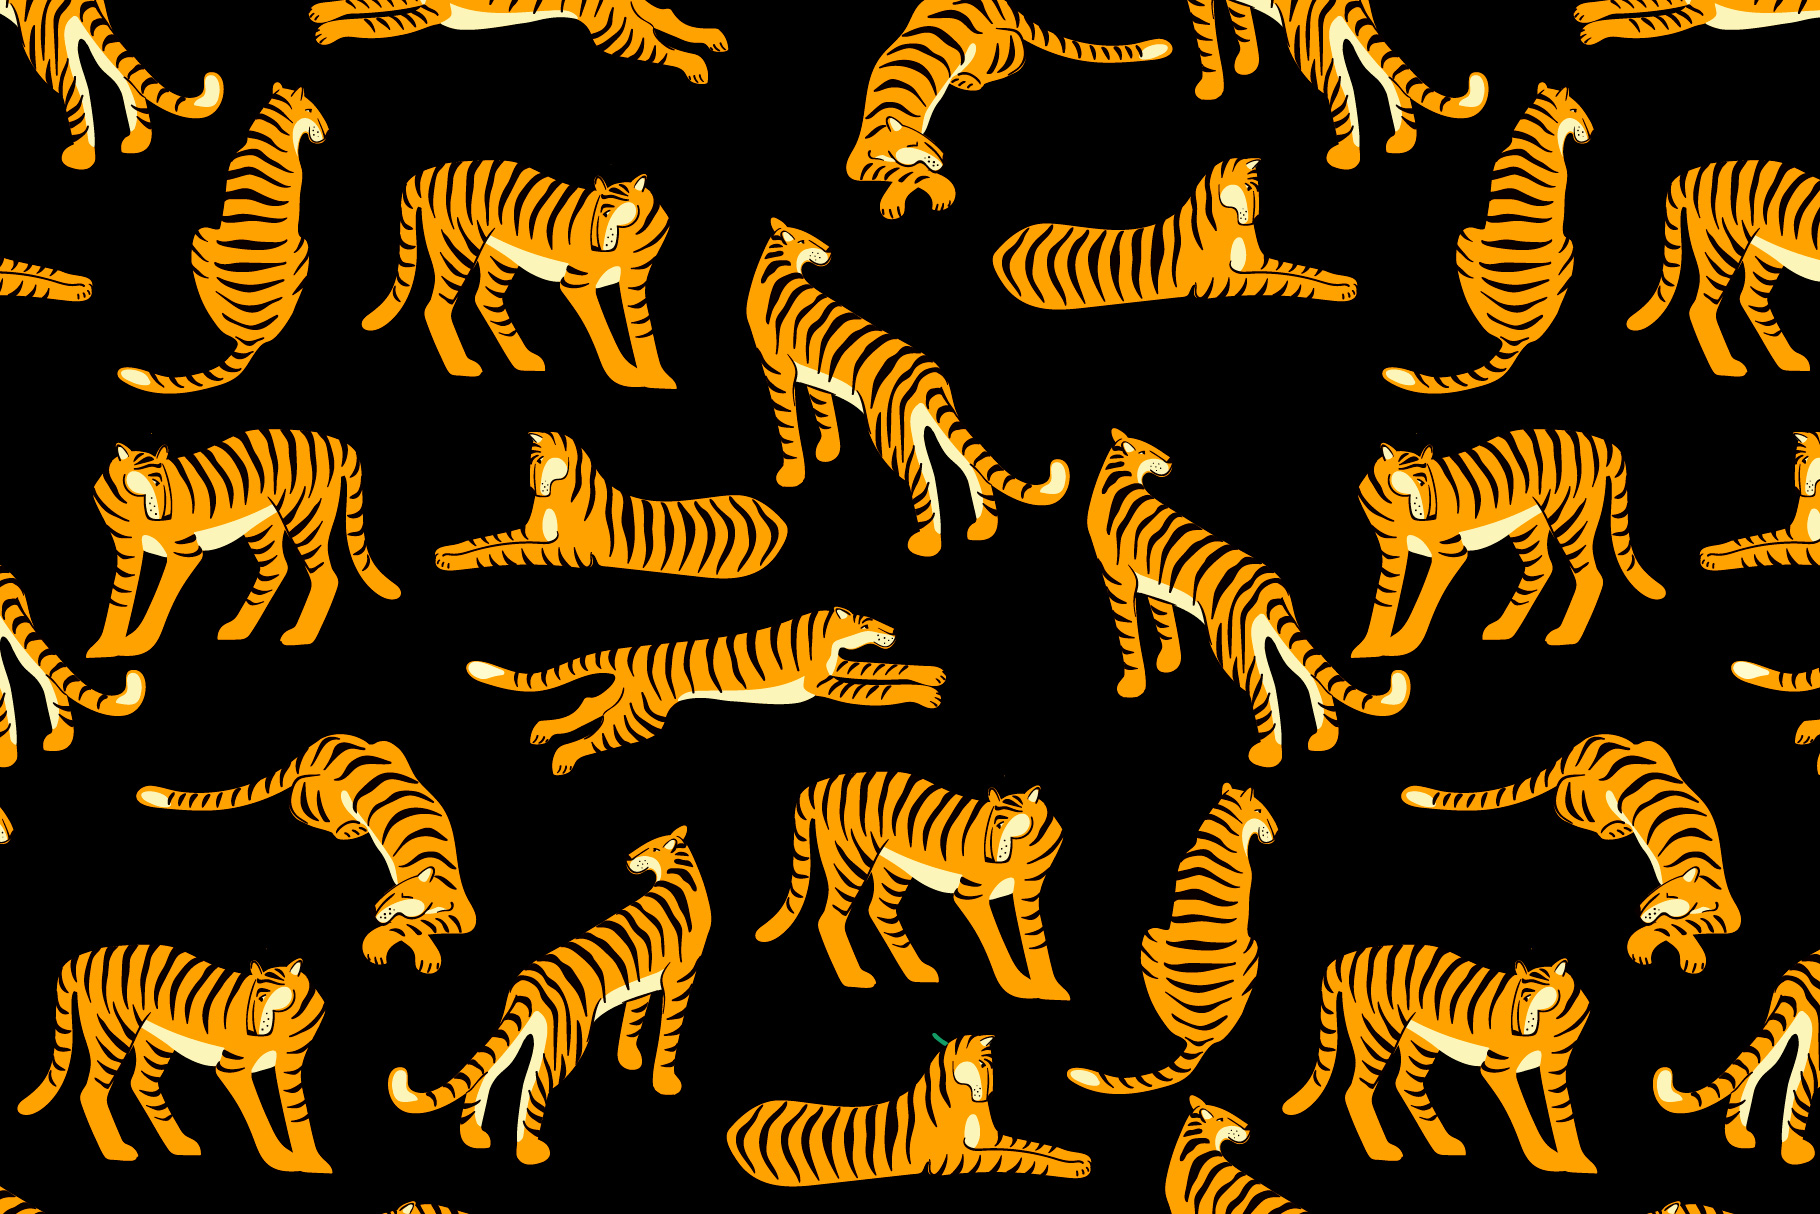 Tiger collection. Patterns & clipart example image 3